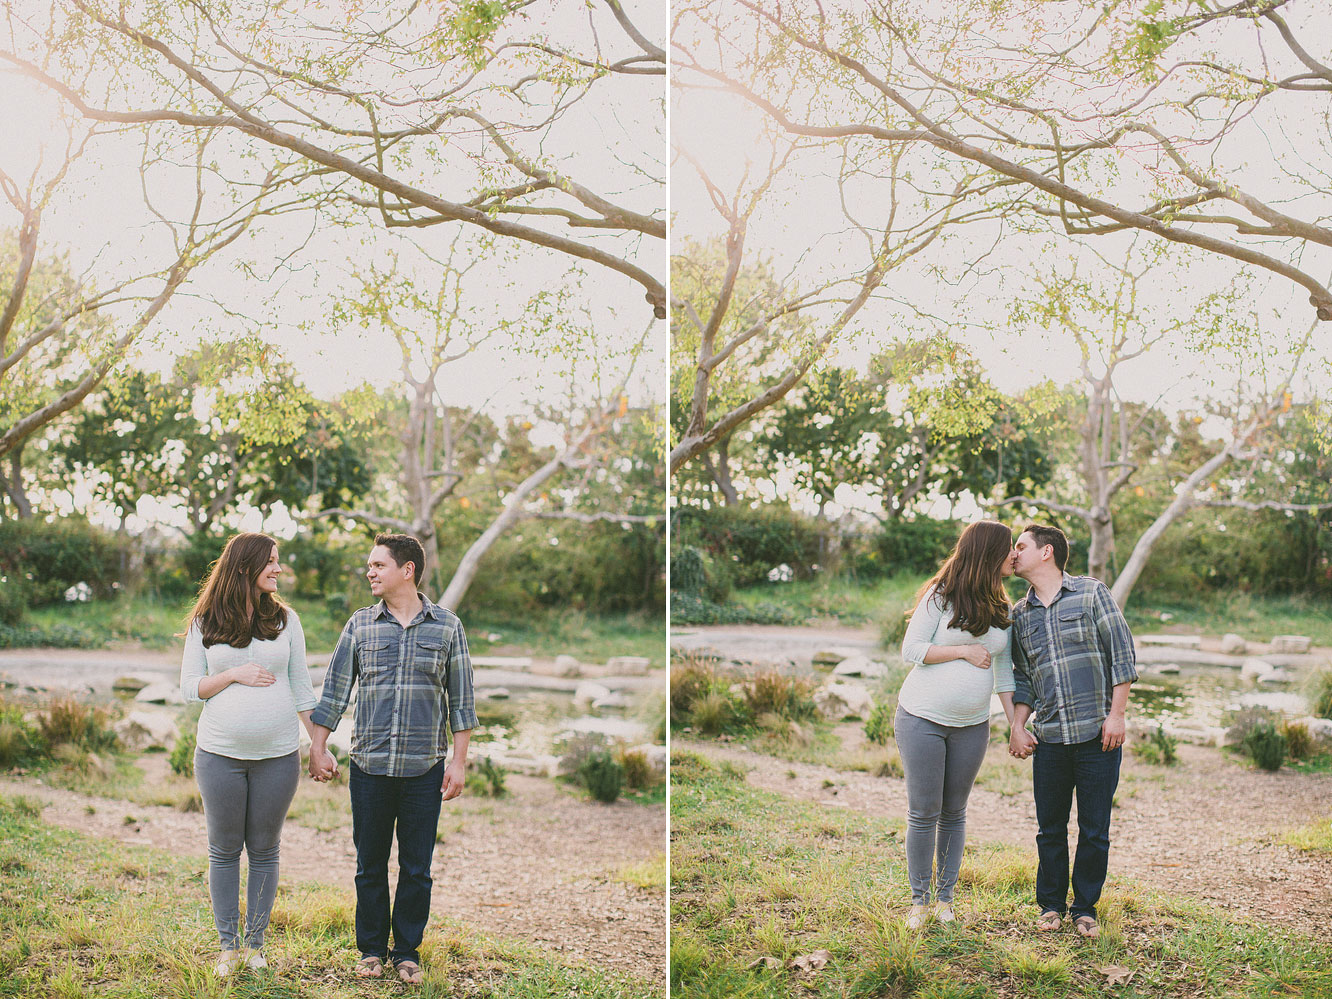 redondo-beach-maternity-photographer-13